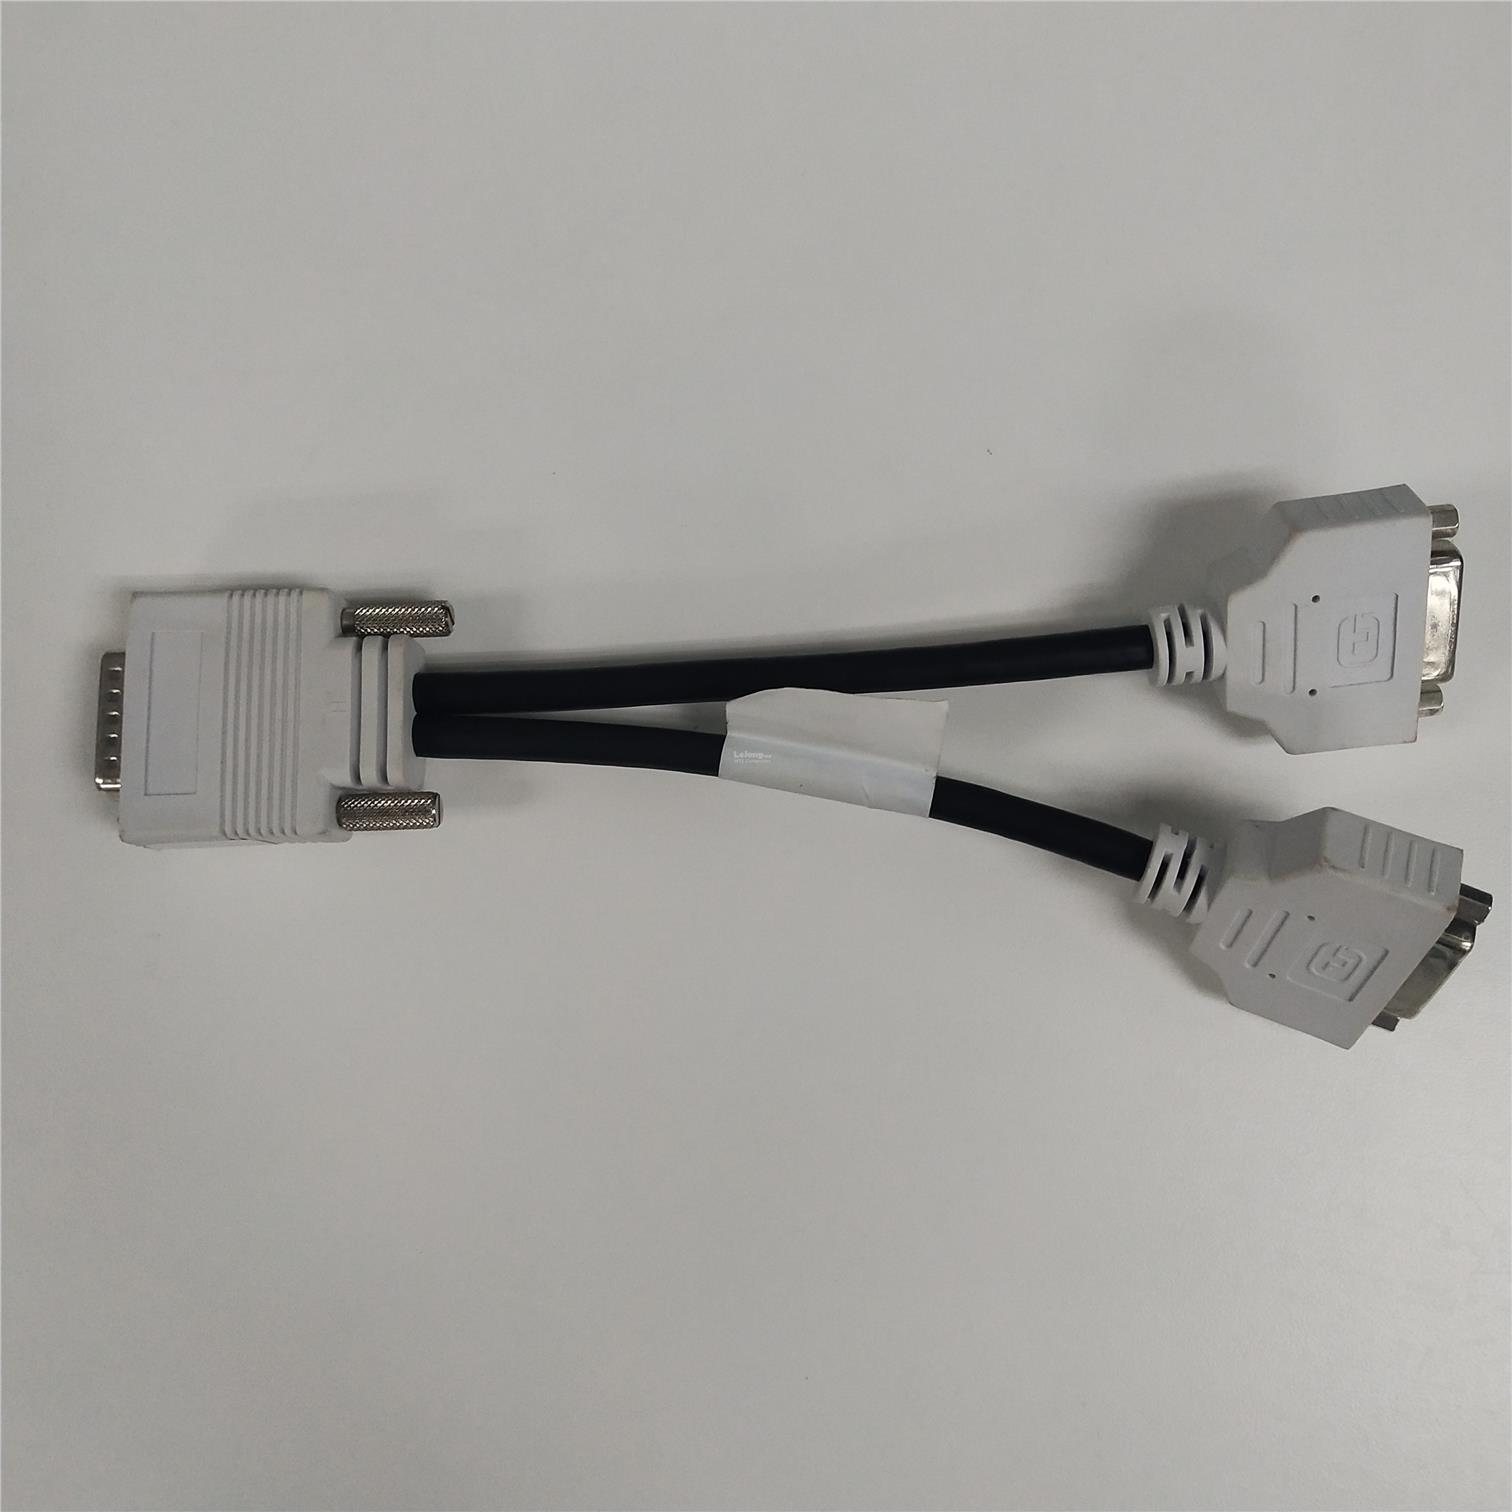 DVI Splitter Y Cable DMS-59 (6502A001-001-01-RS1)